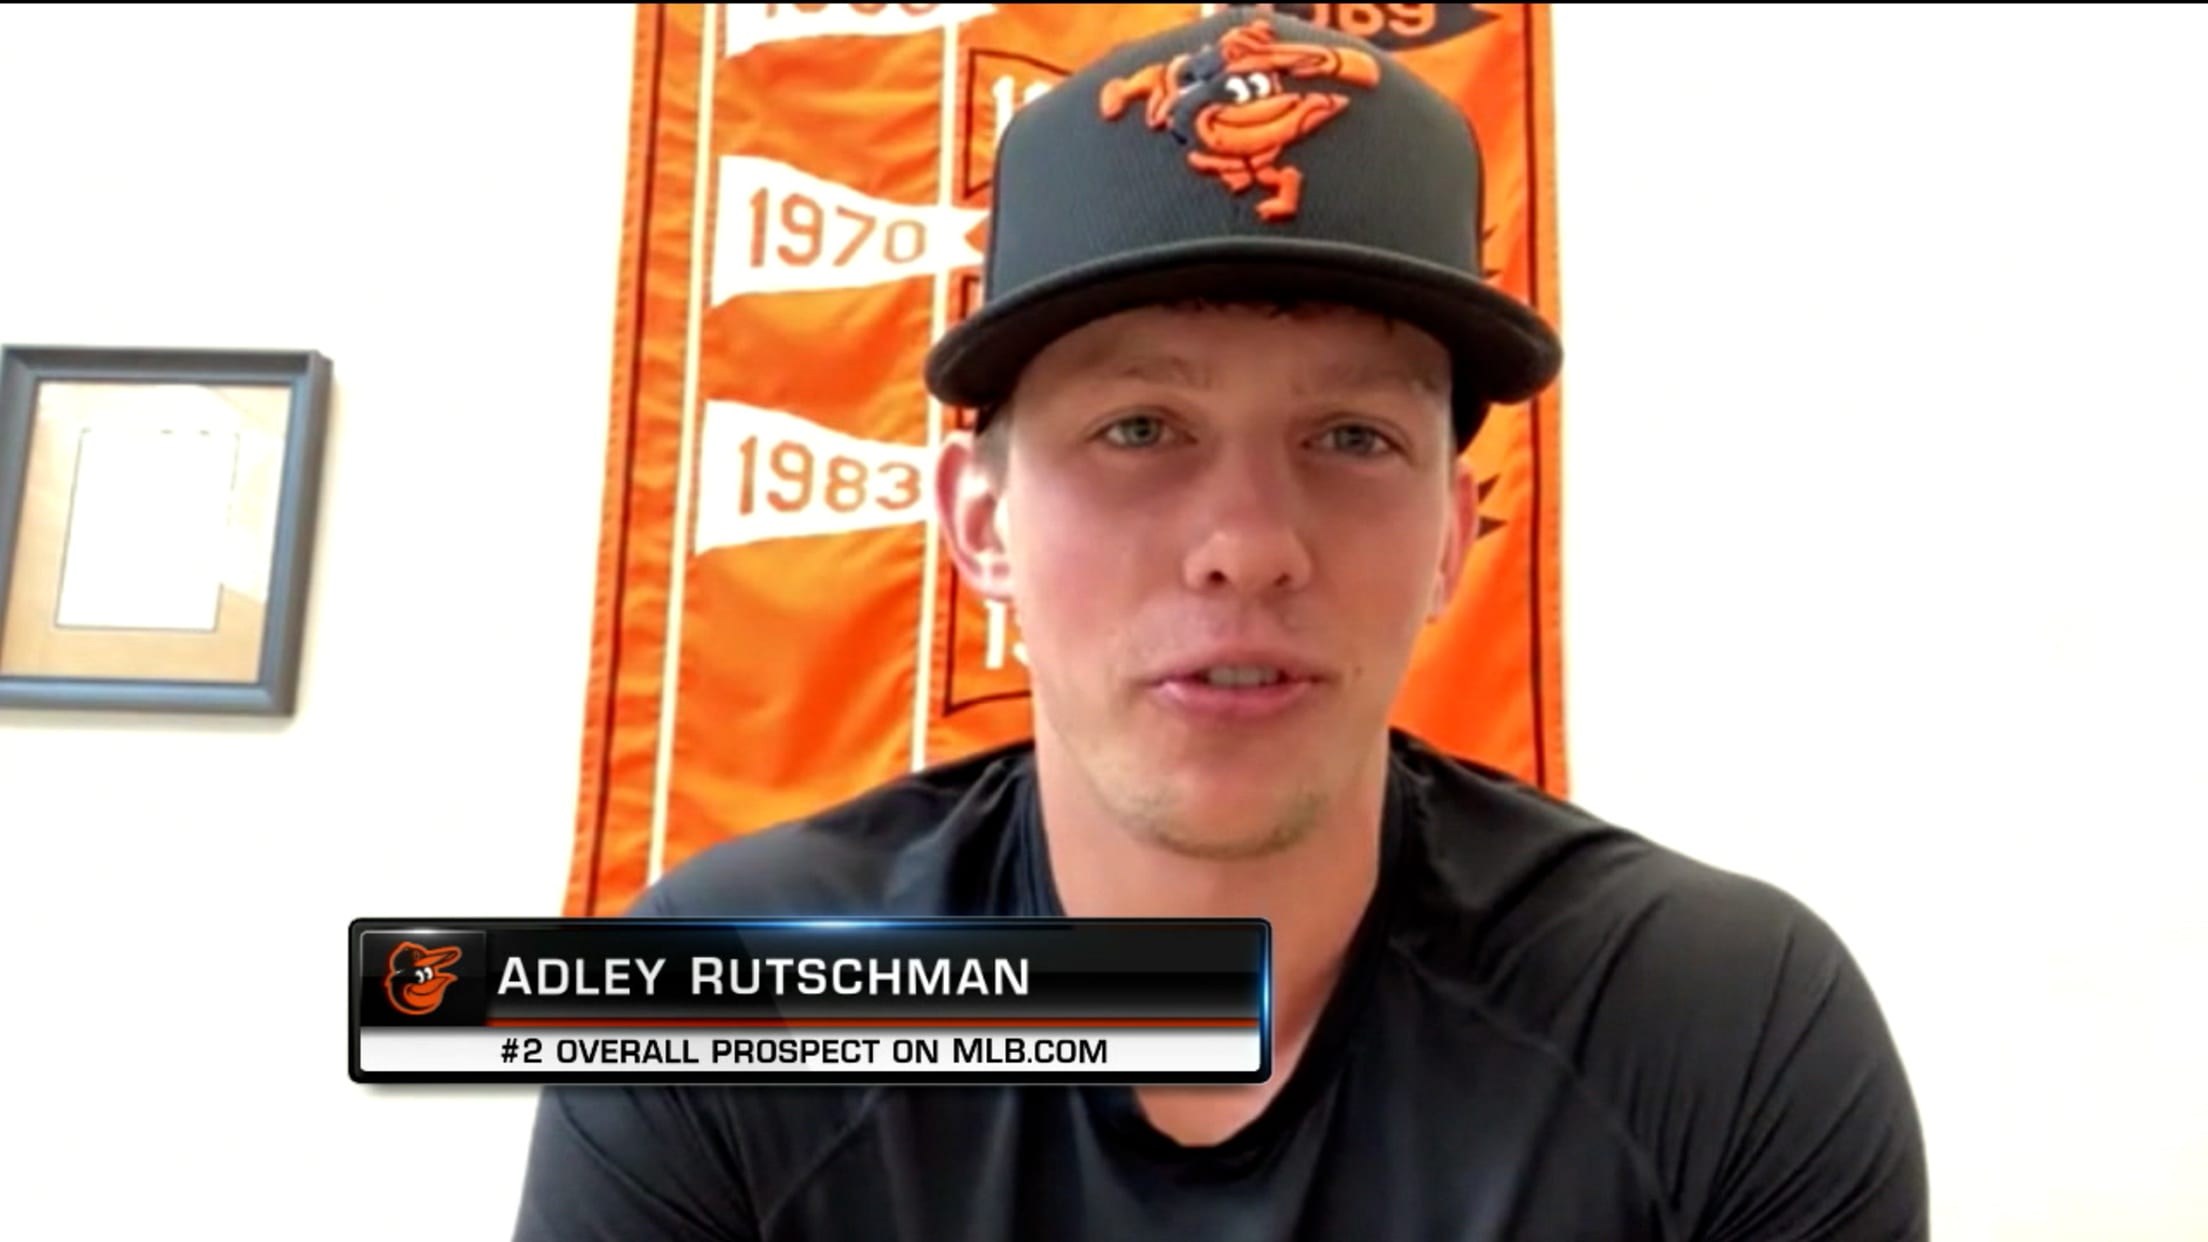 Adley Rutschman on ST thus far